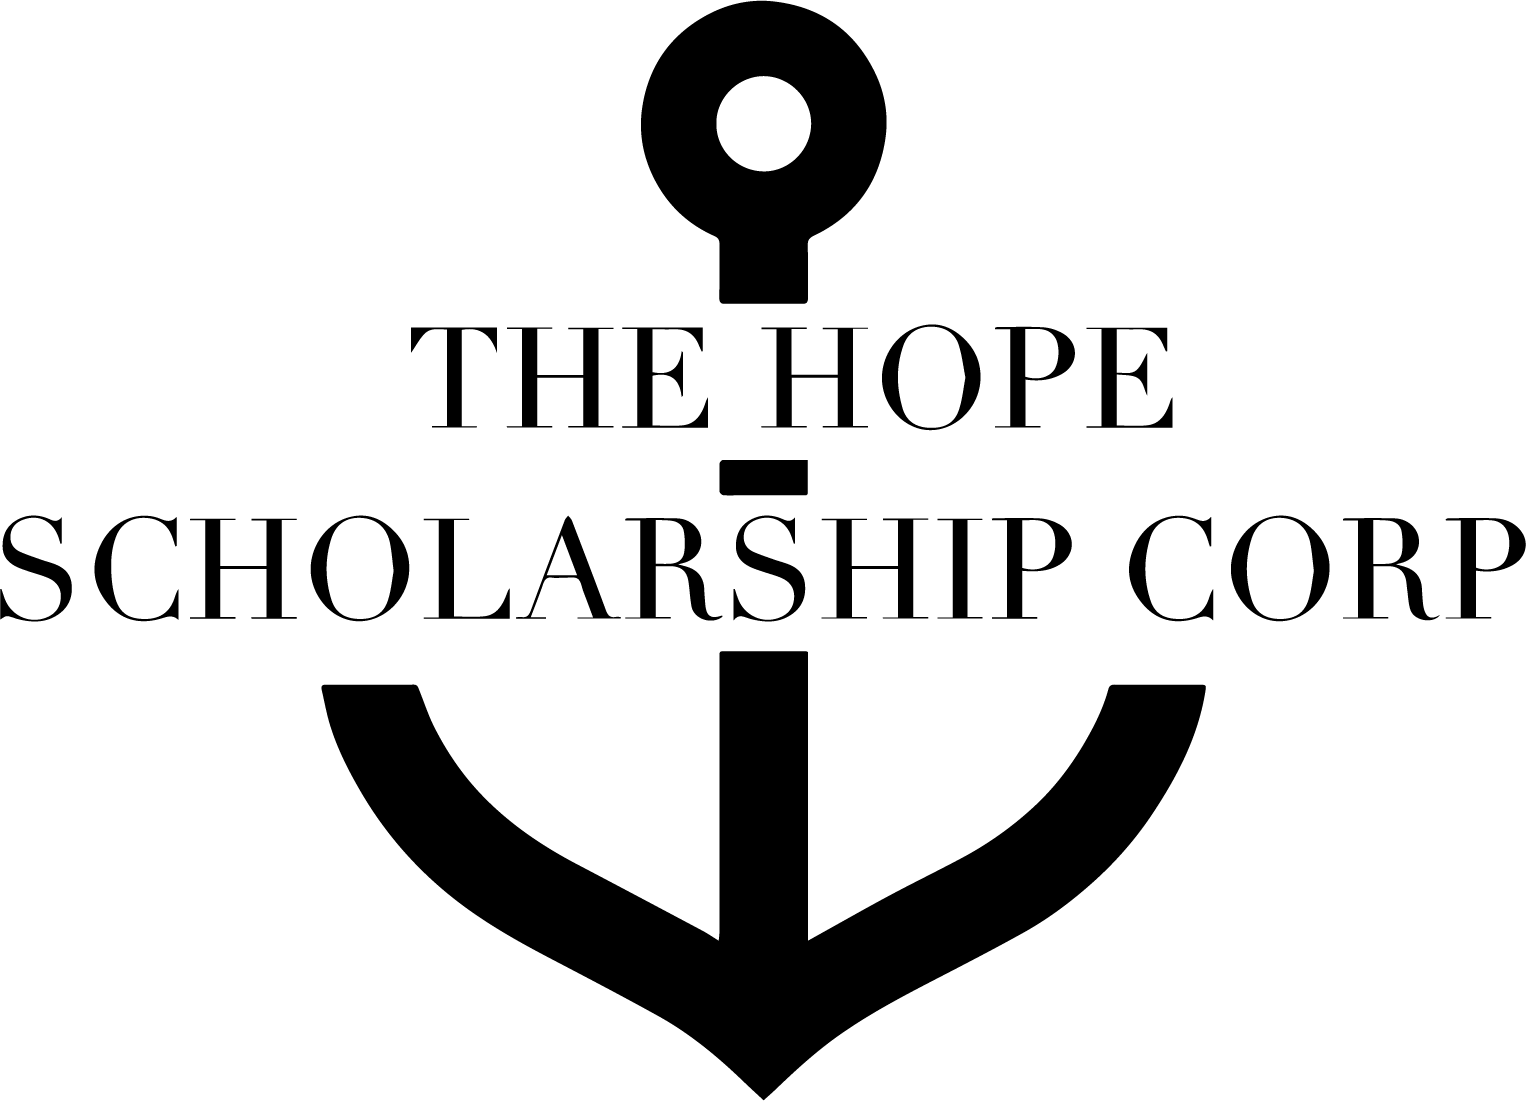 The Hope Scholarship Corp Donation Fund